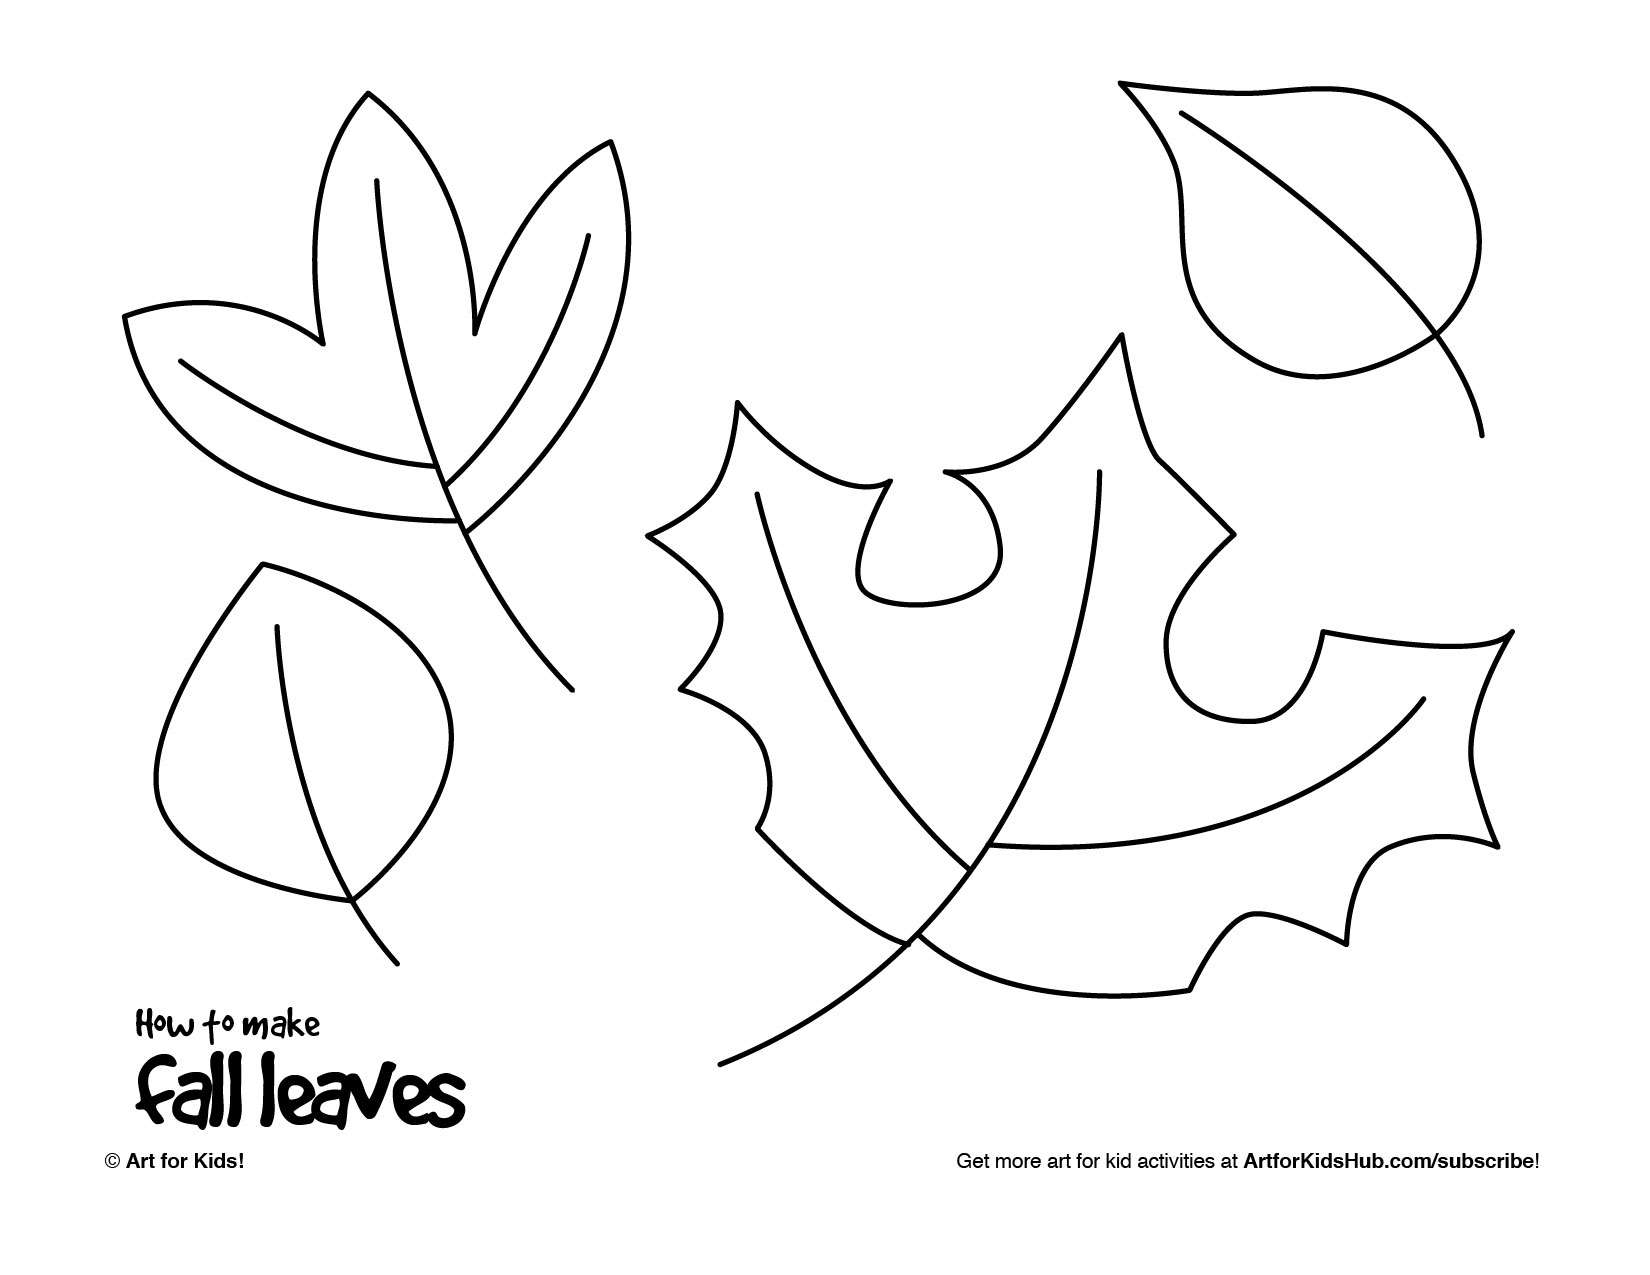 Uncategorized Leaves To Draw how to make fall leaves art for kids hub leaves